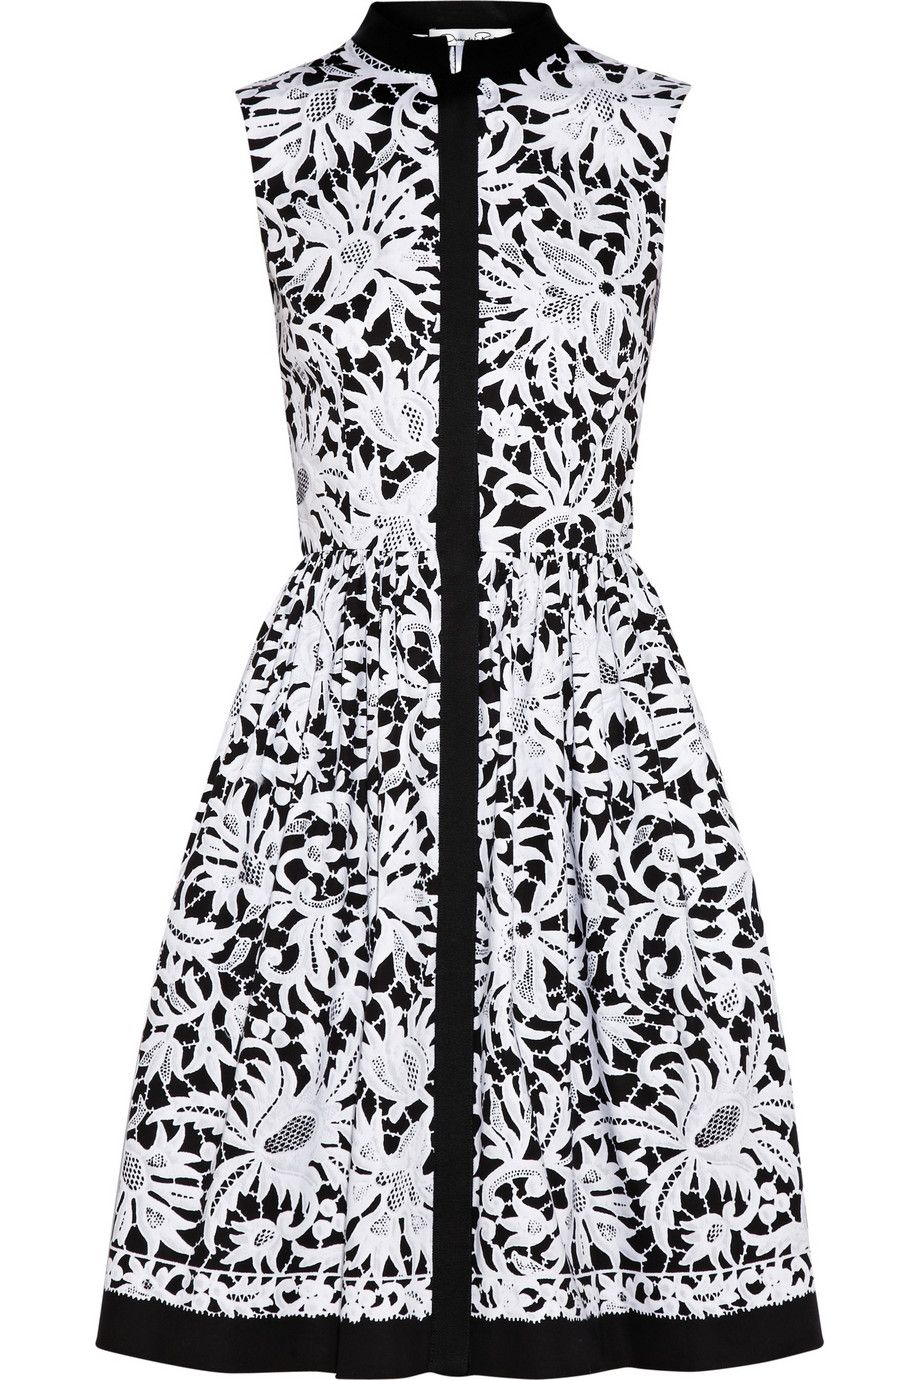 Graphic black and white floral lace #print shirt #dress by Oscar de ...